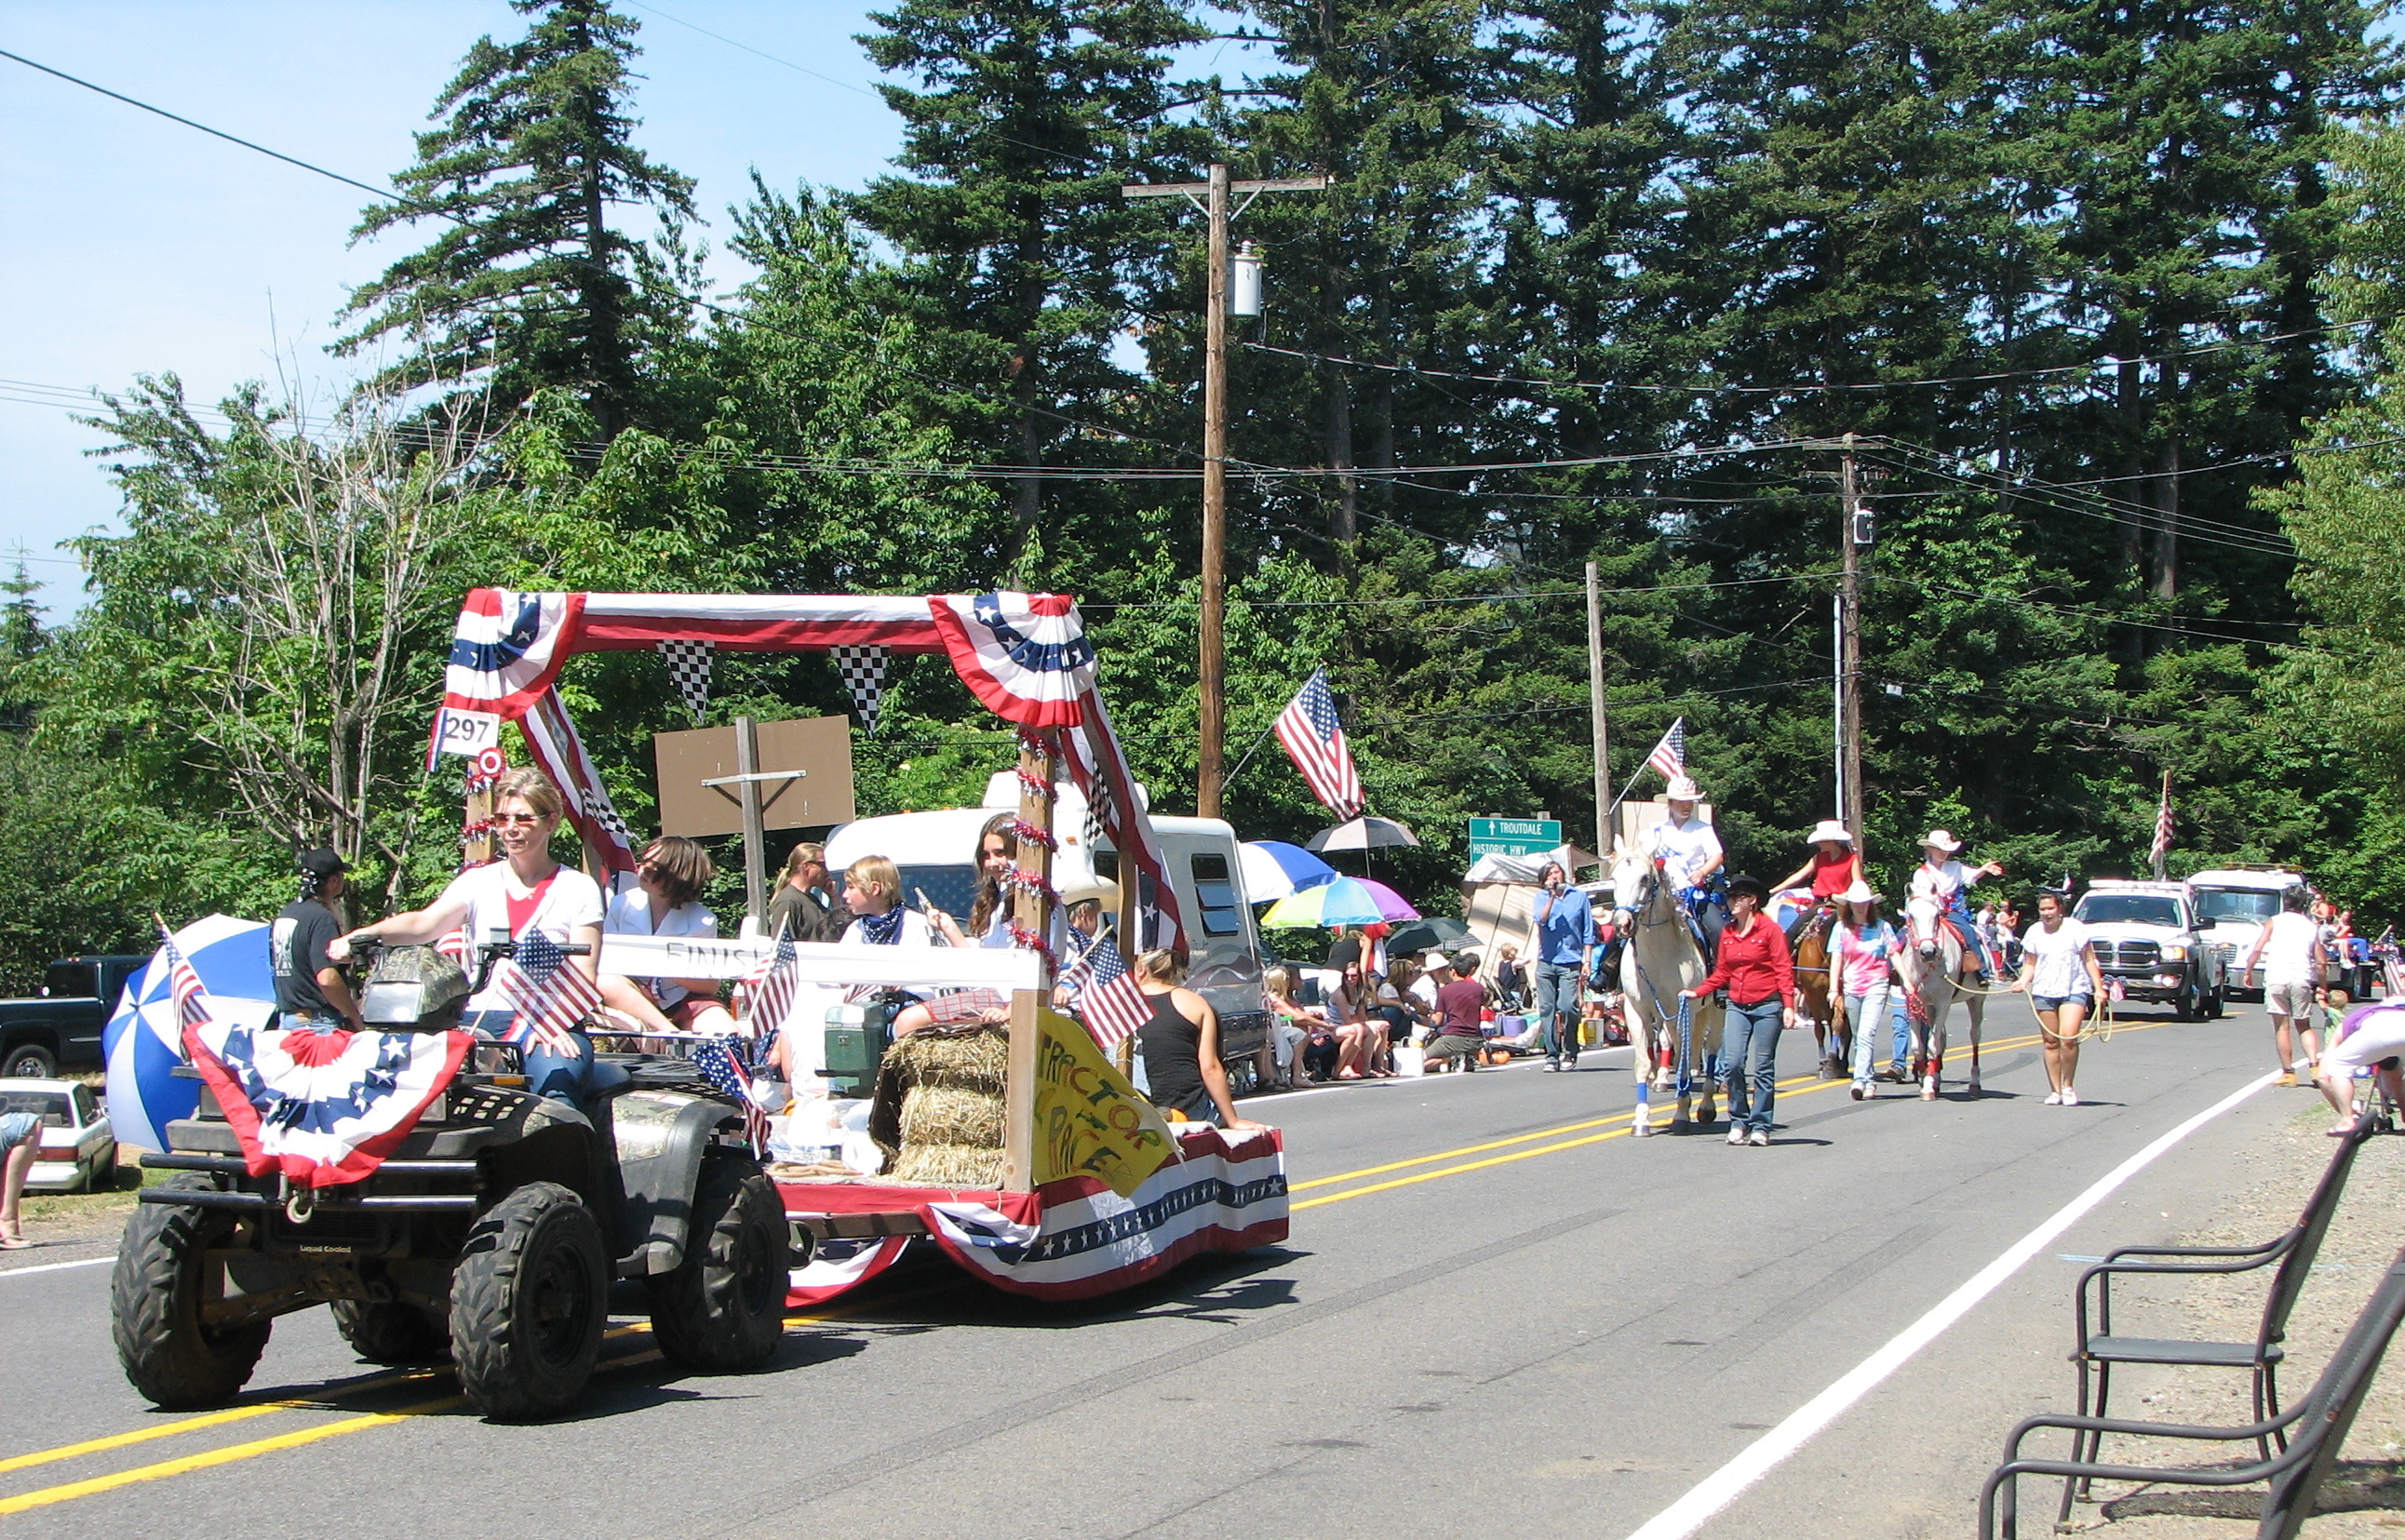 Independence Day parade 2009 - Corbett Oregon.jpg